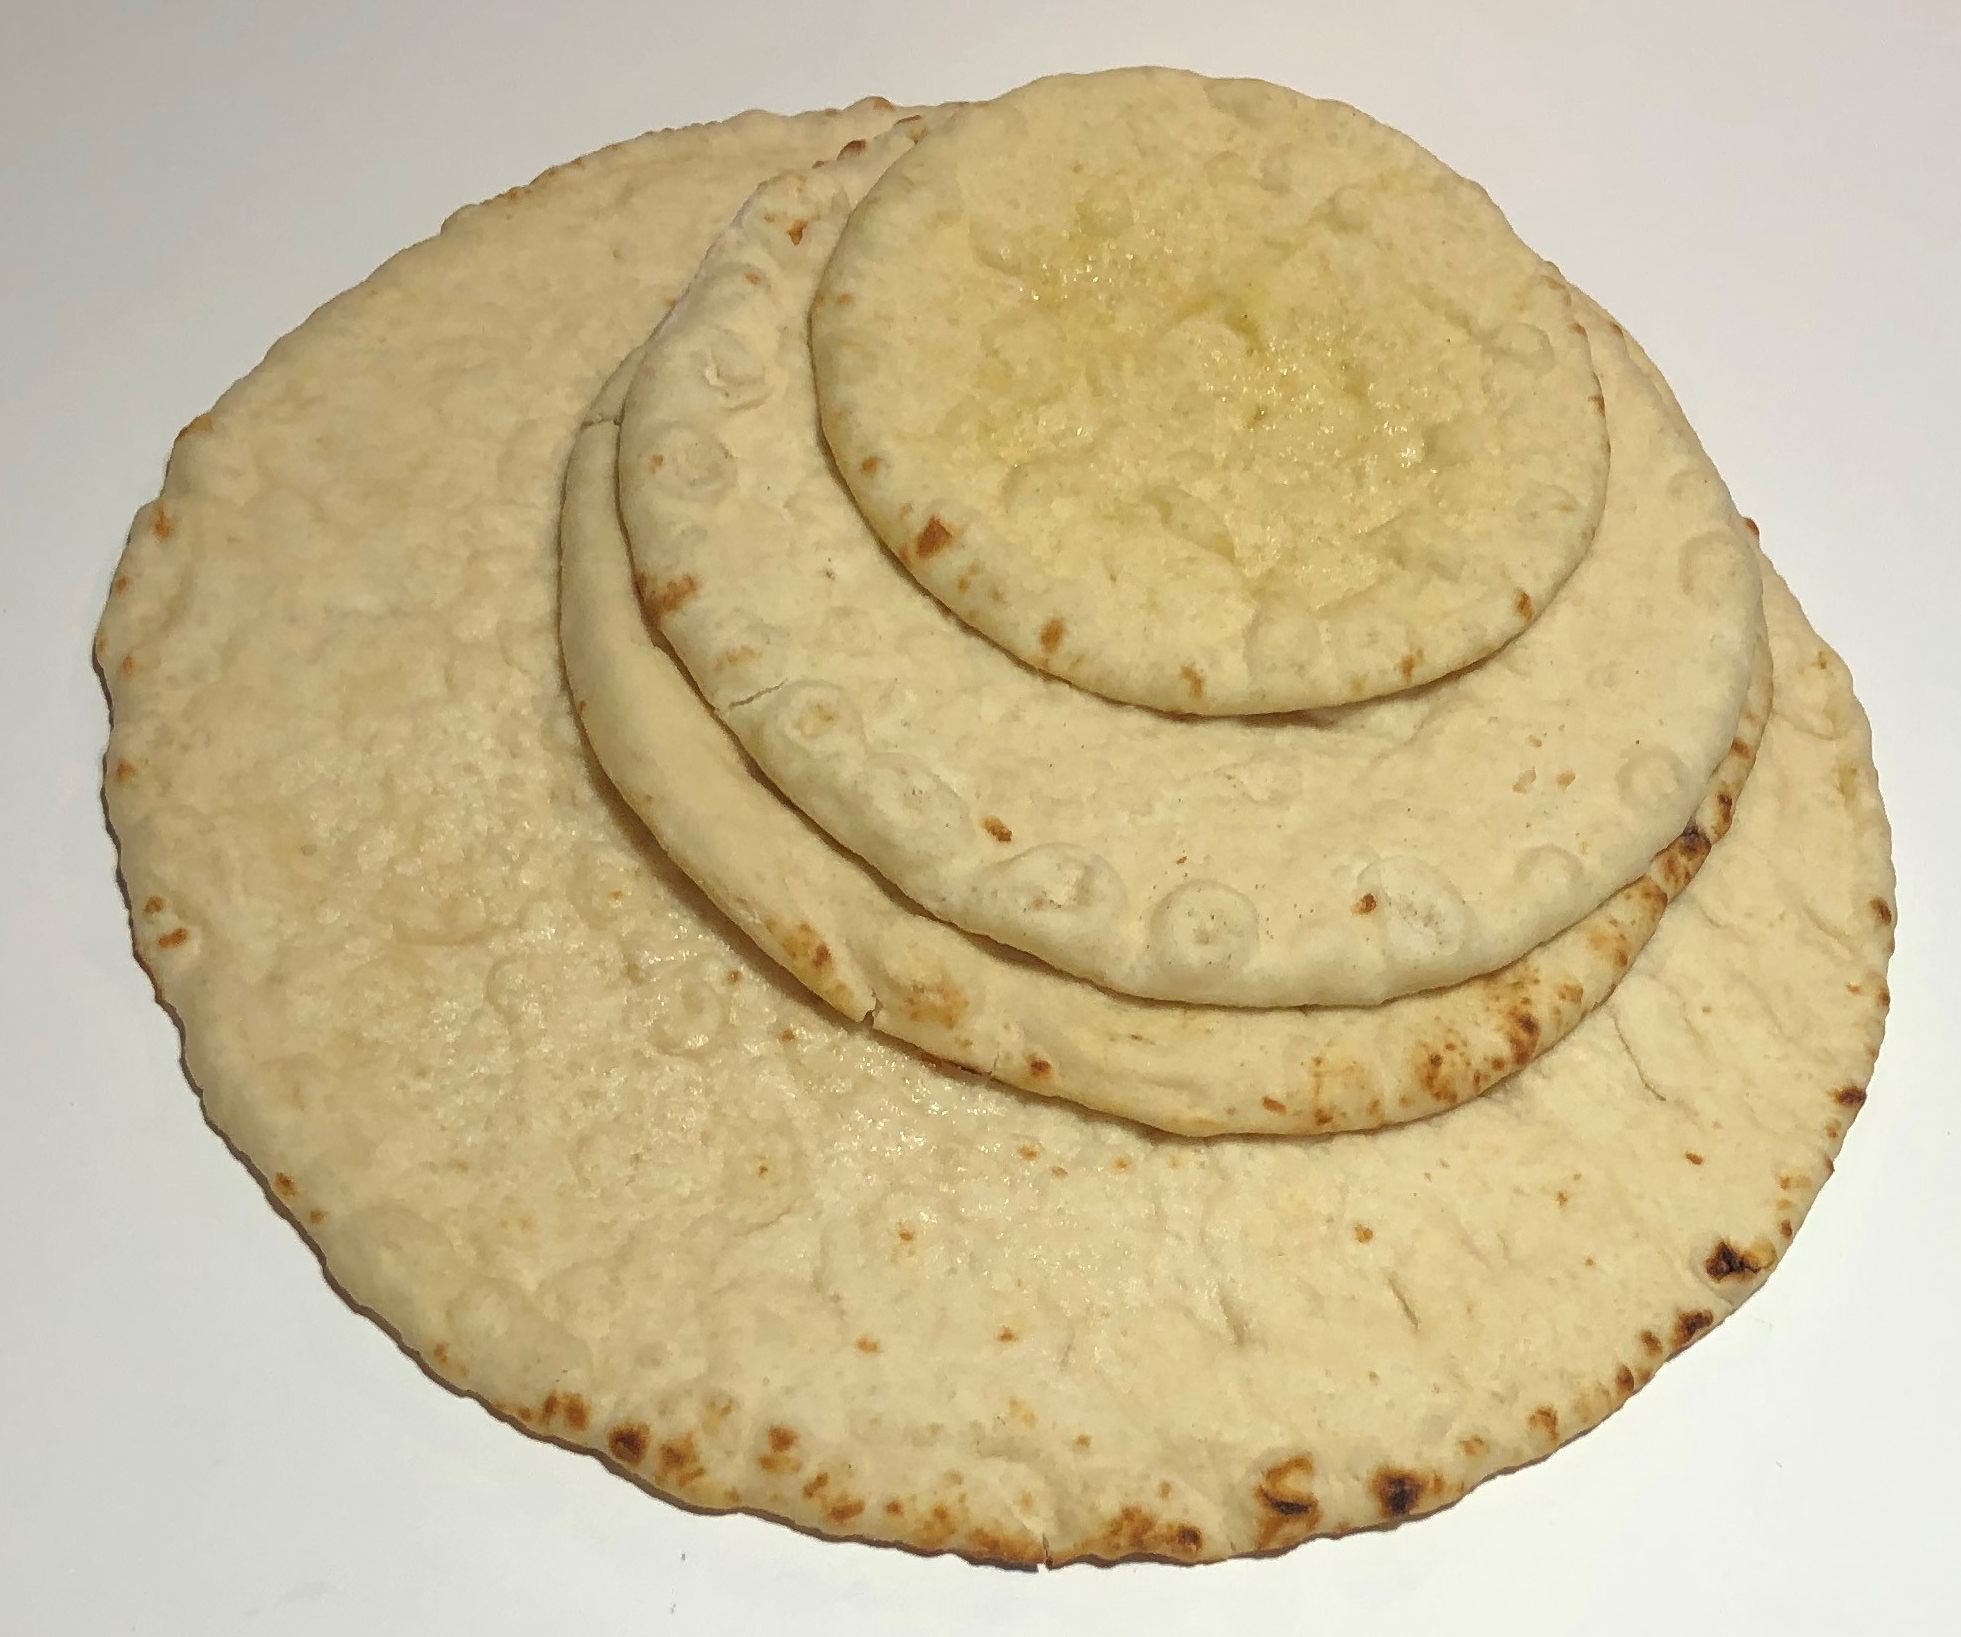 Bare crust on plate